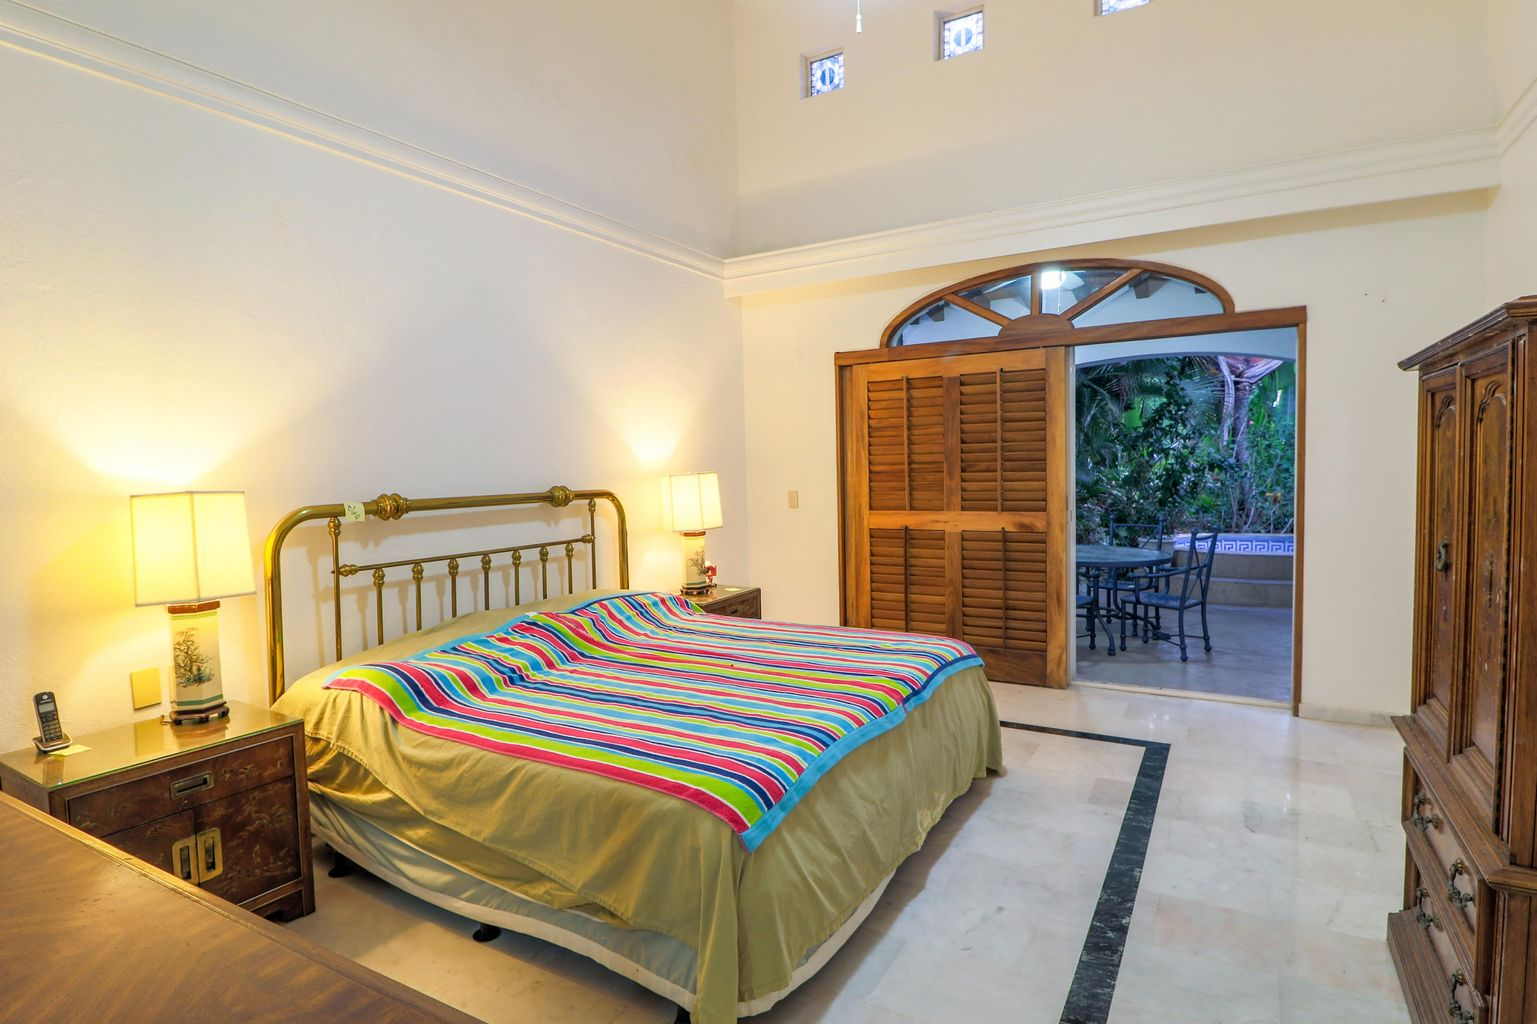 master bedroom on first floor, access to terrace and pool